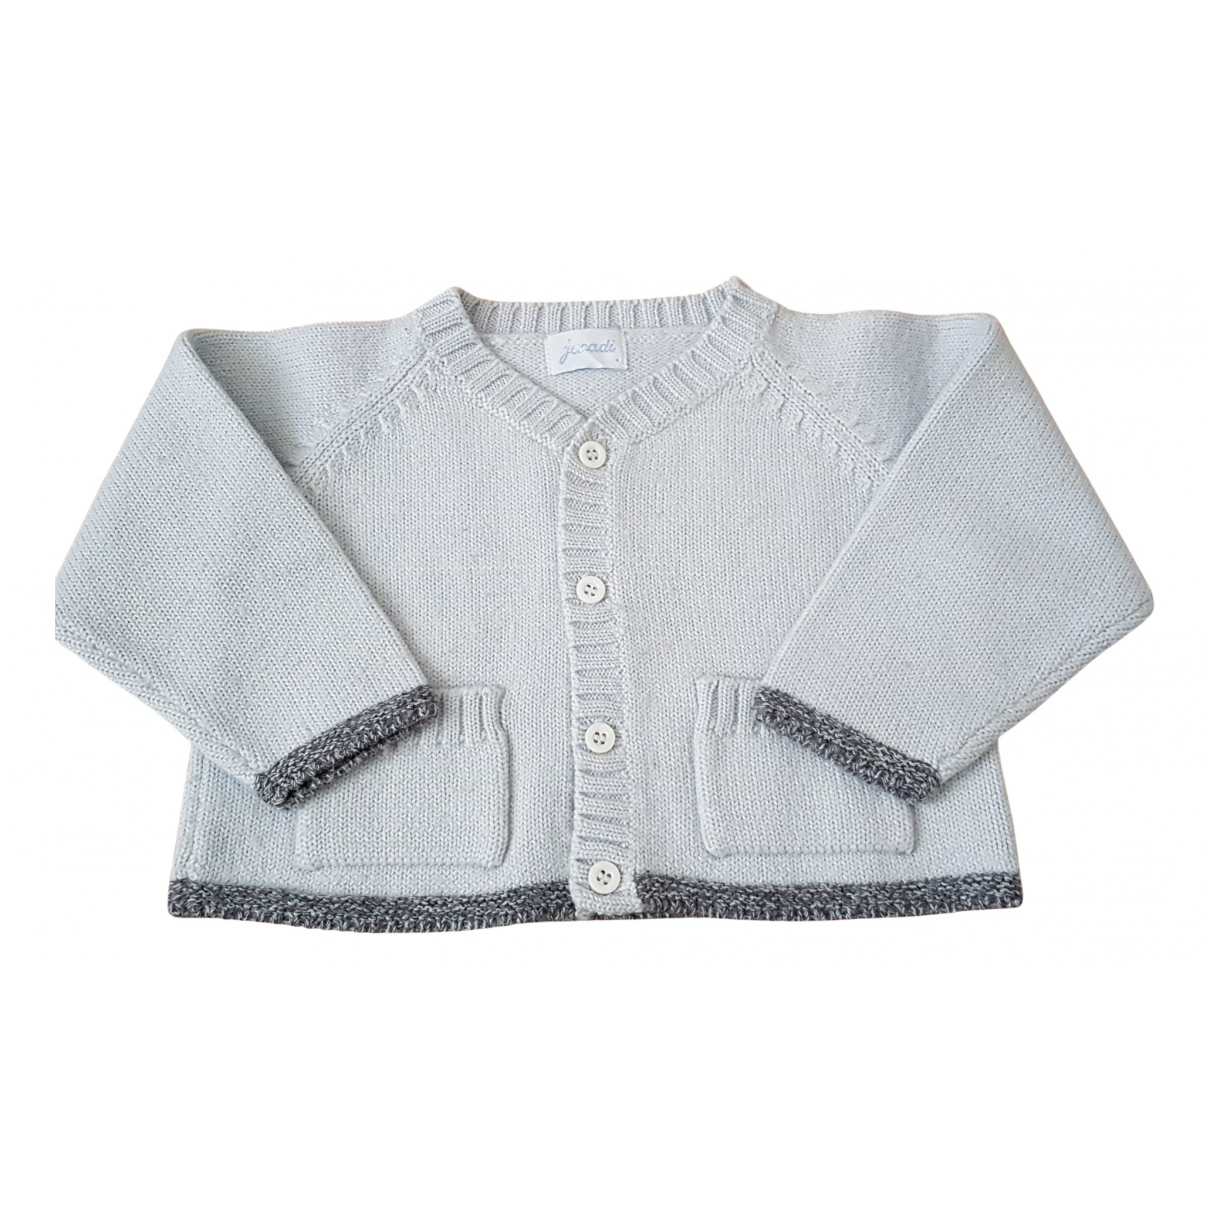 Jacadi N Blue Wool Knitwear for Kids 18 months - up to 81cm FR